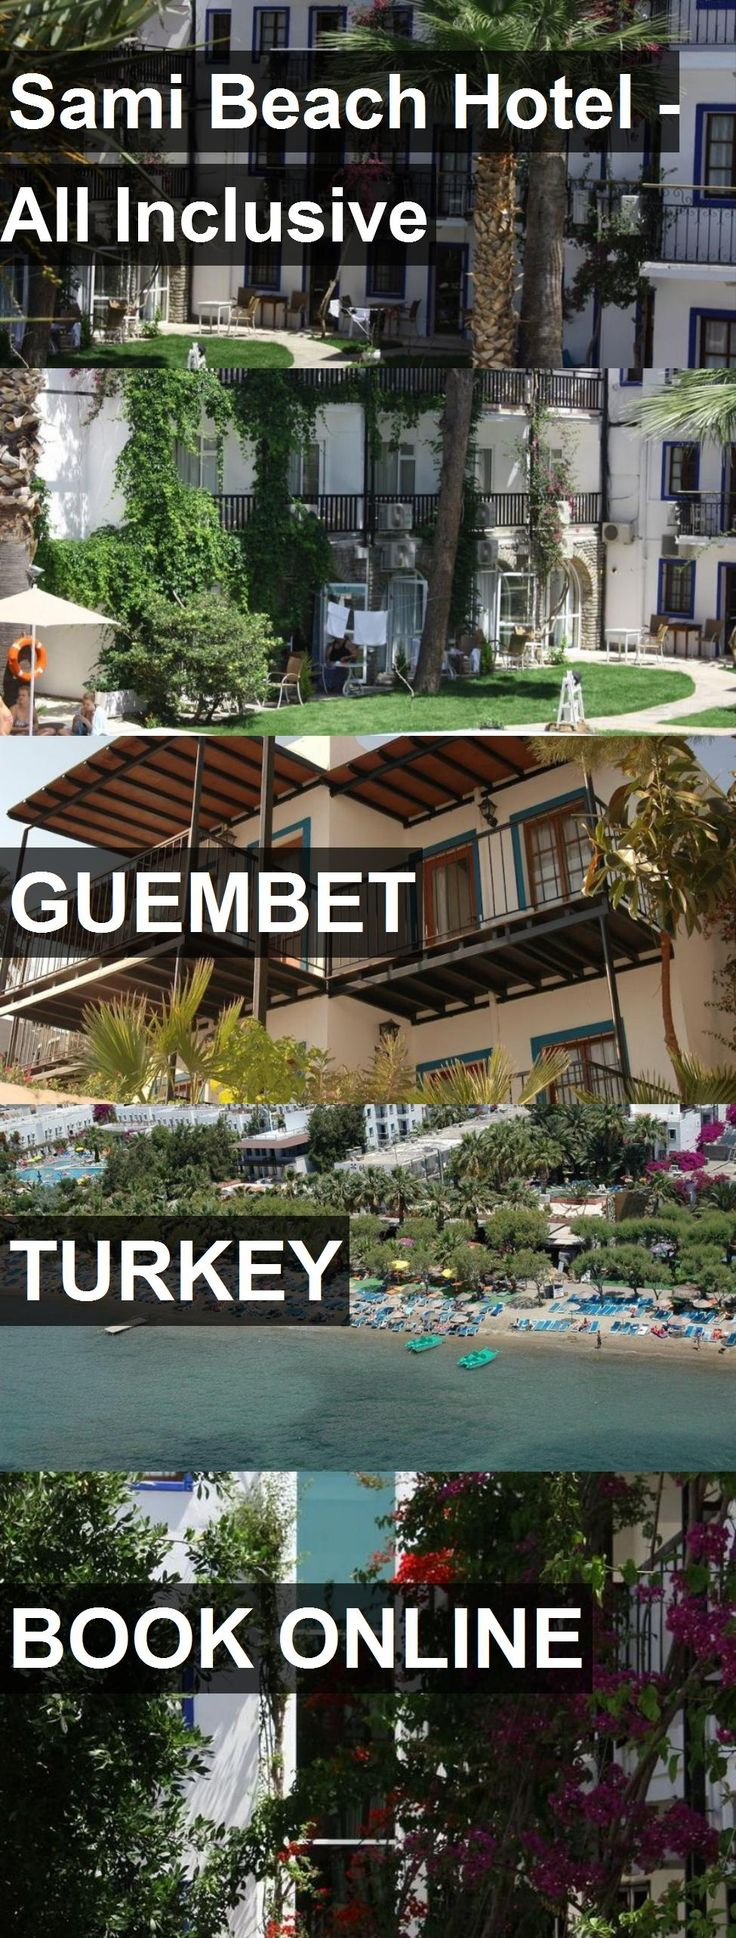 Hotel Sami Beach Hotel - All Inclusive in Guembet, Turkey. For more information, photos, reviews and best prices please follow the link. #Turkey #Guembet #SamiBeachHotel-AllInclusive #hotel #travel #vacation